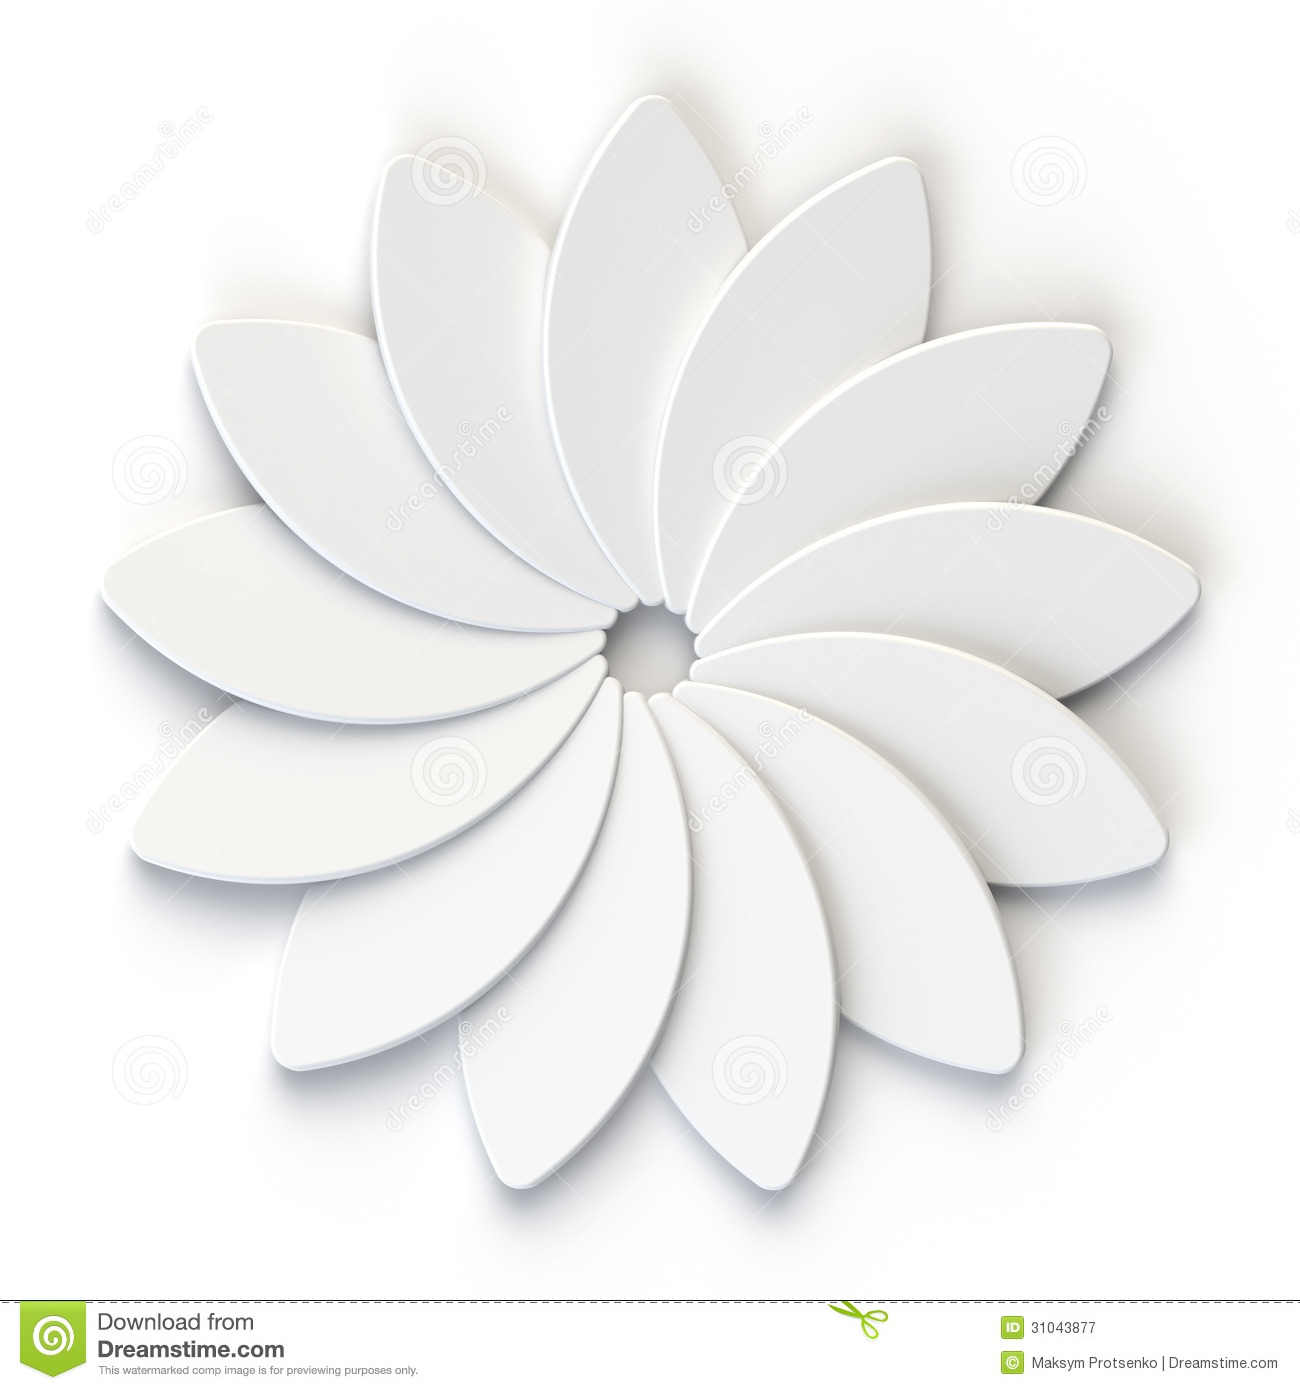 3d abstract white flower on white background stock illustration 3d abstract white flower on white background royalty free illustration mightylinksfo